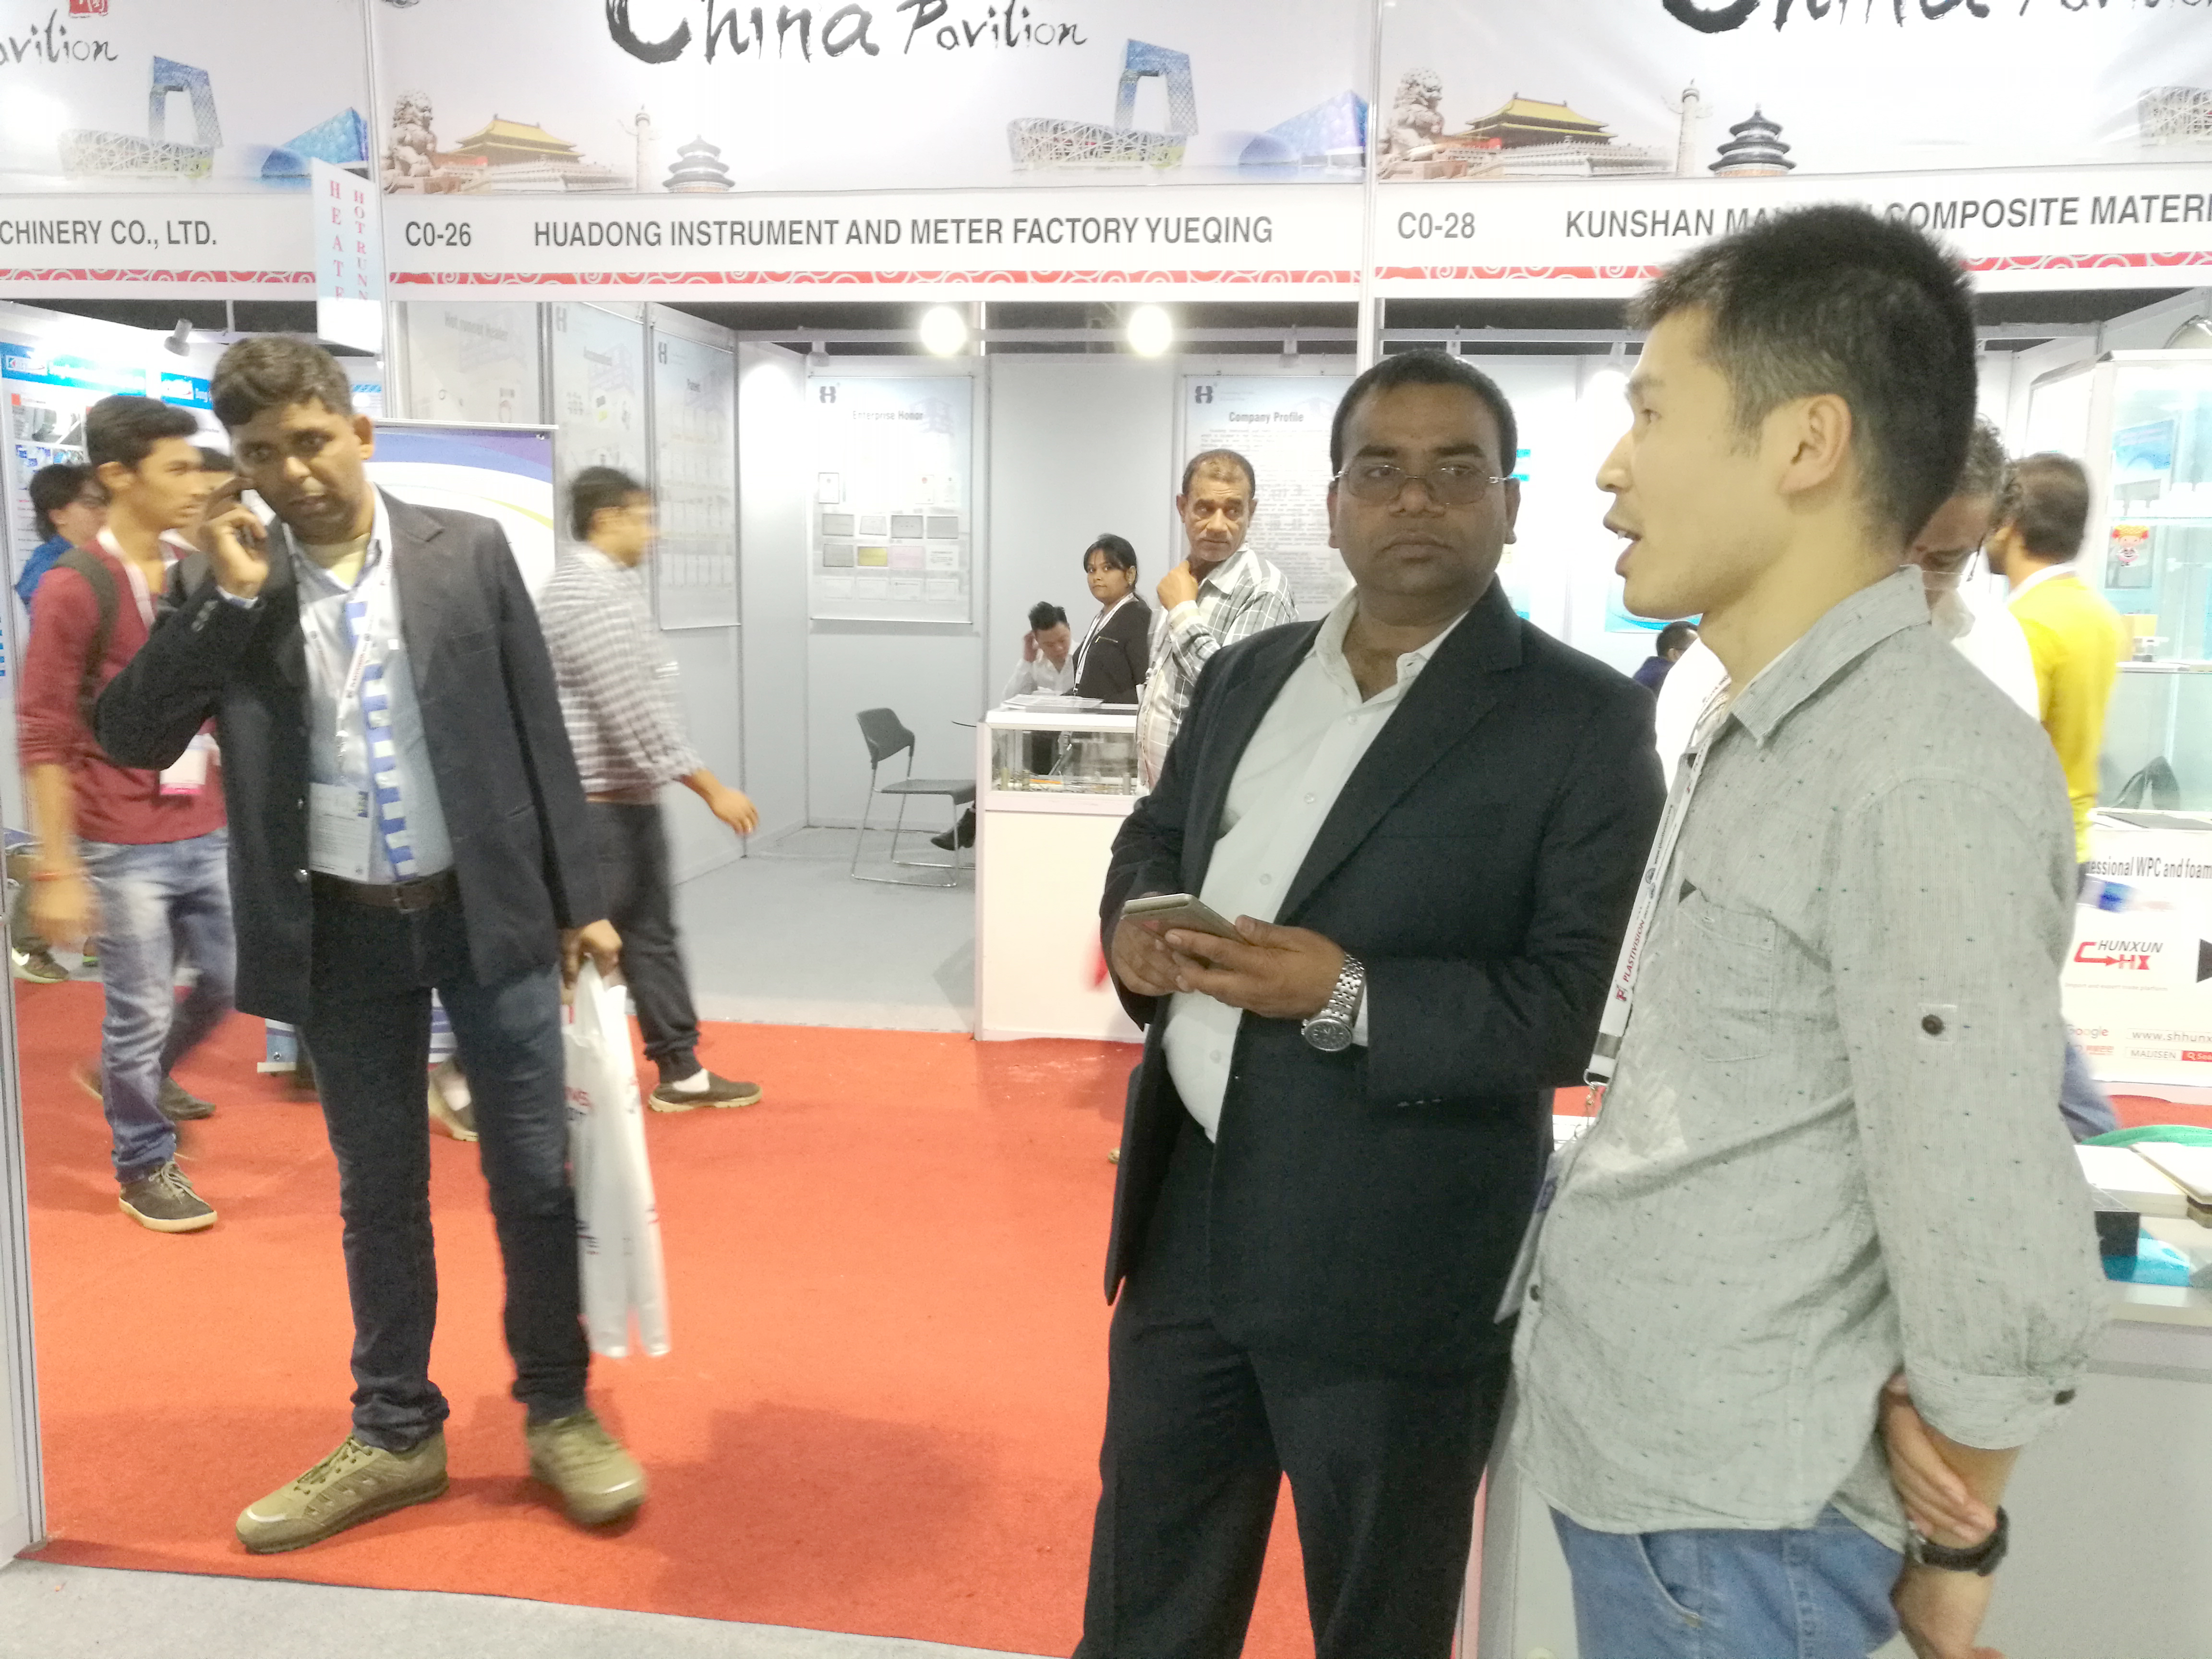 PLASTIVISION INDIA 2017 --- GPM --- HALL 6 A1-7